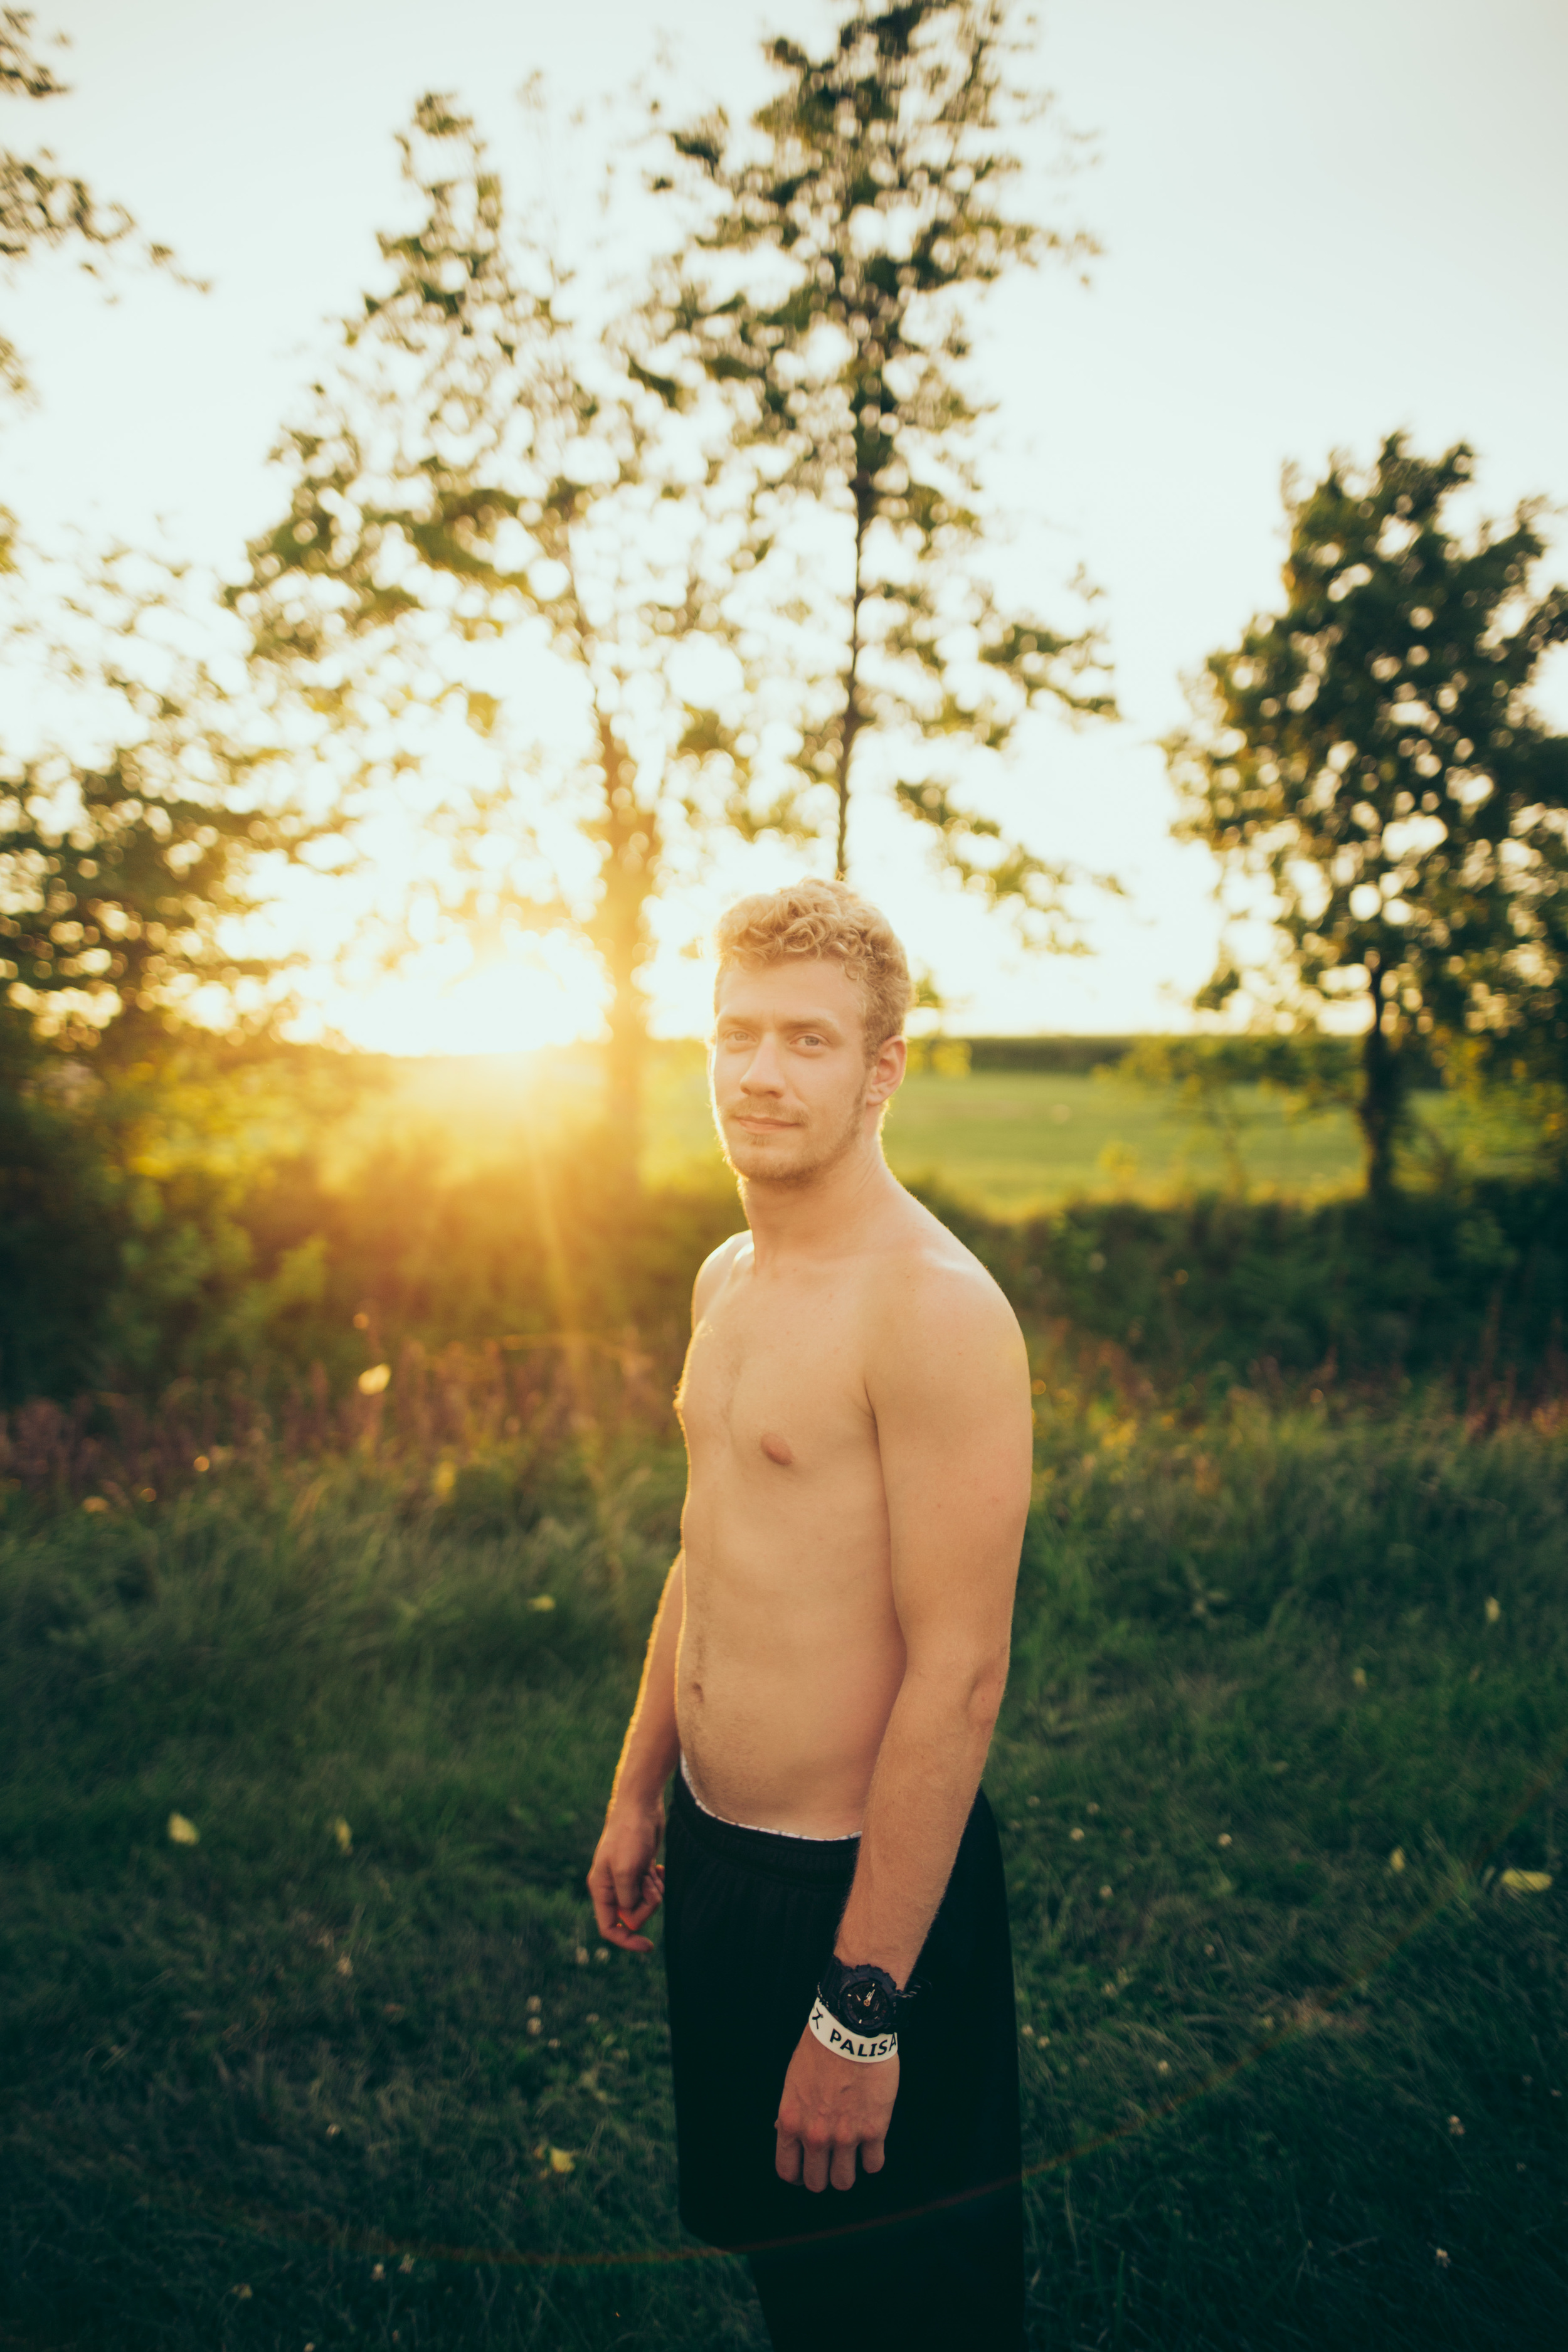 We had a nice sunset at least so I forced Will to pose for me.